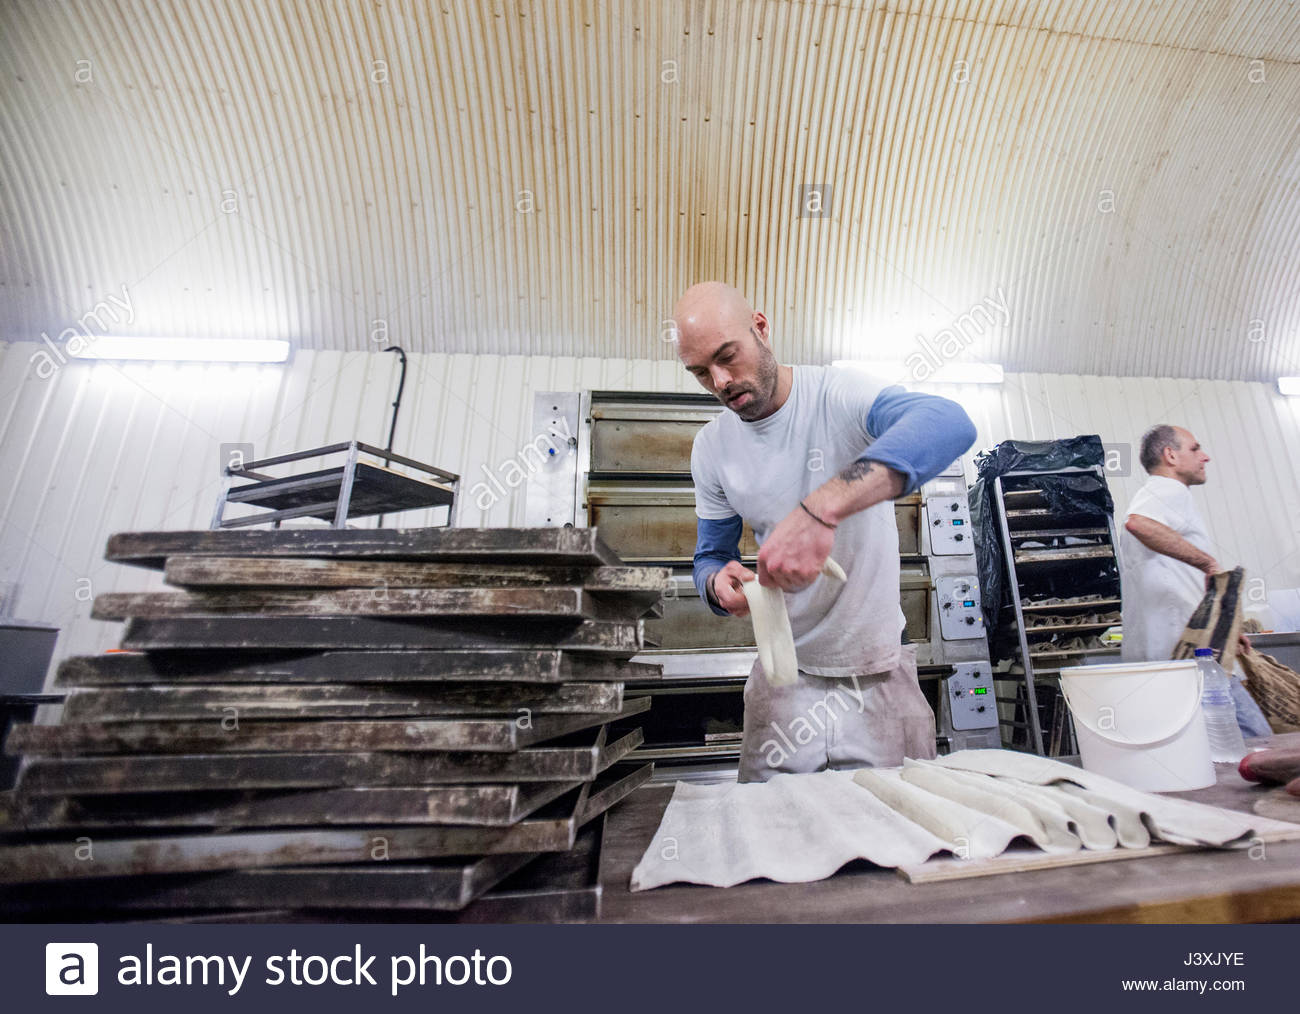 Baker working with dough in bakery - Stock Image